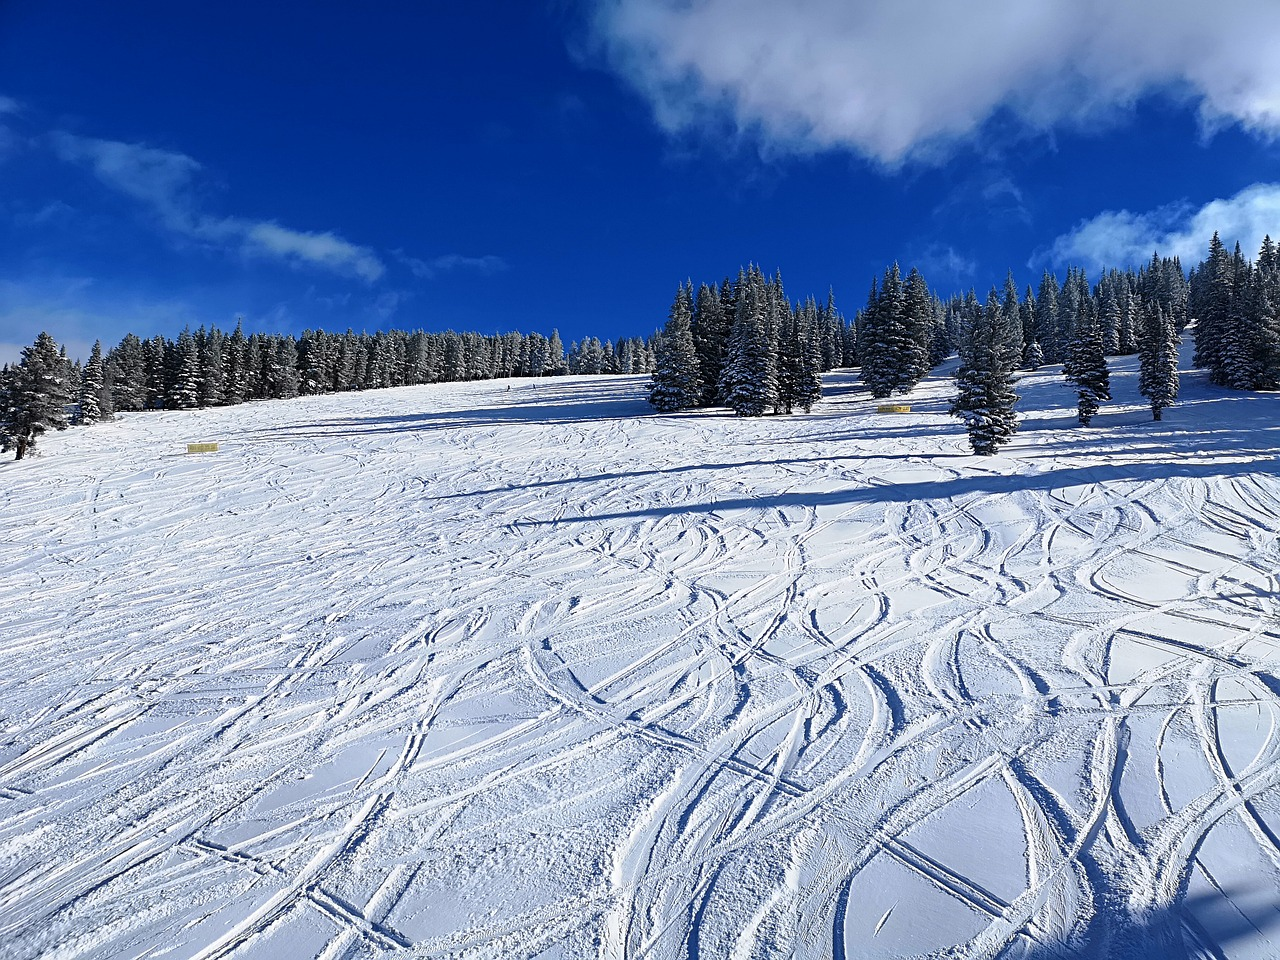 Skiing at the Vail in Colorado